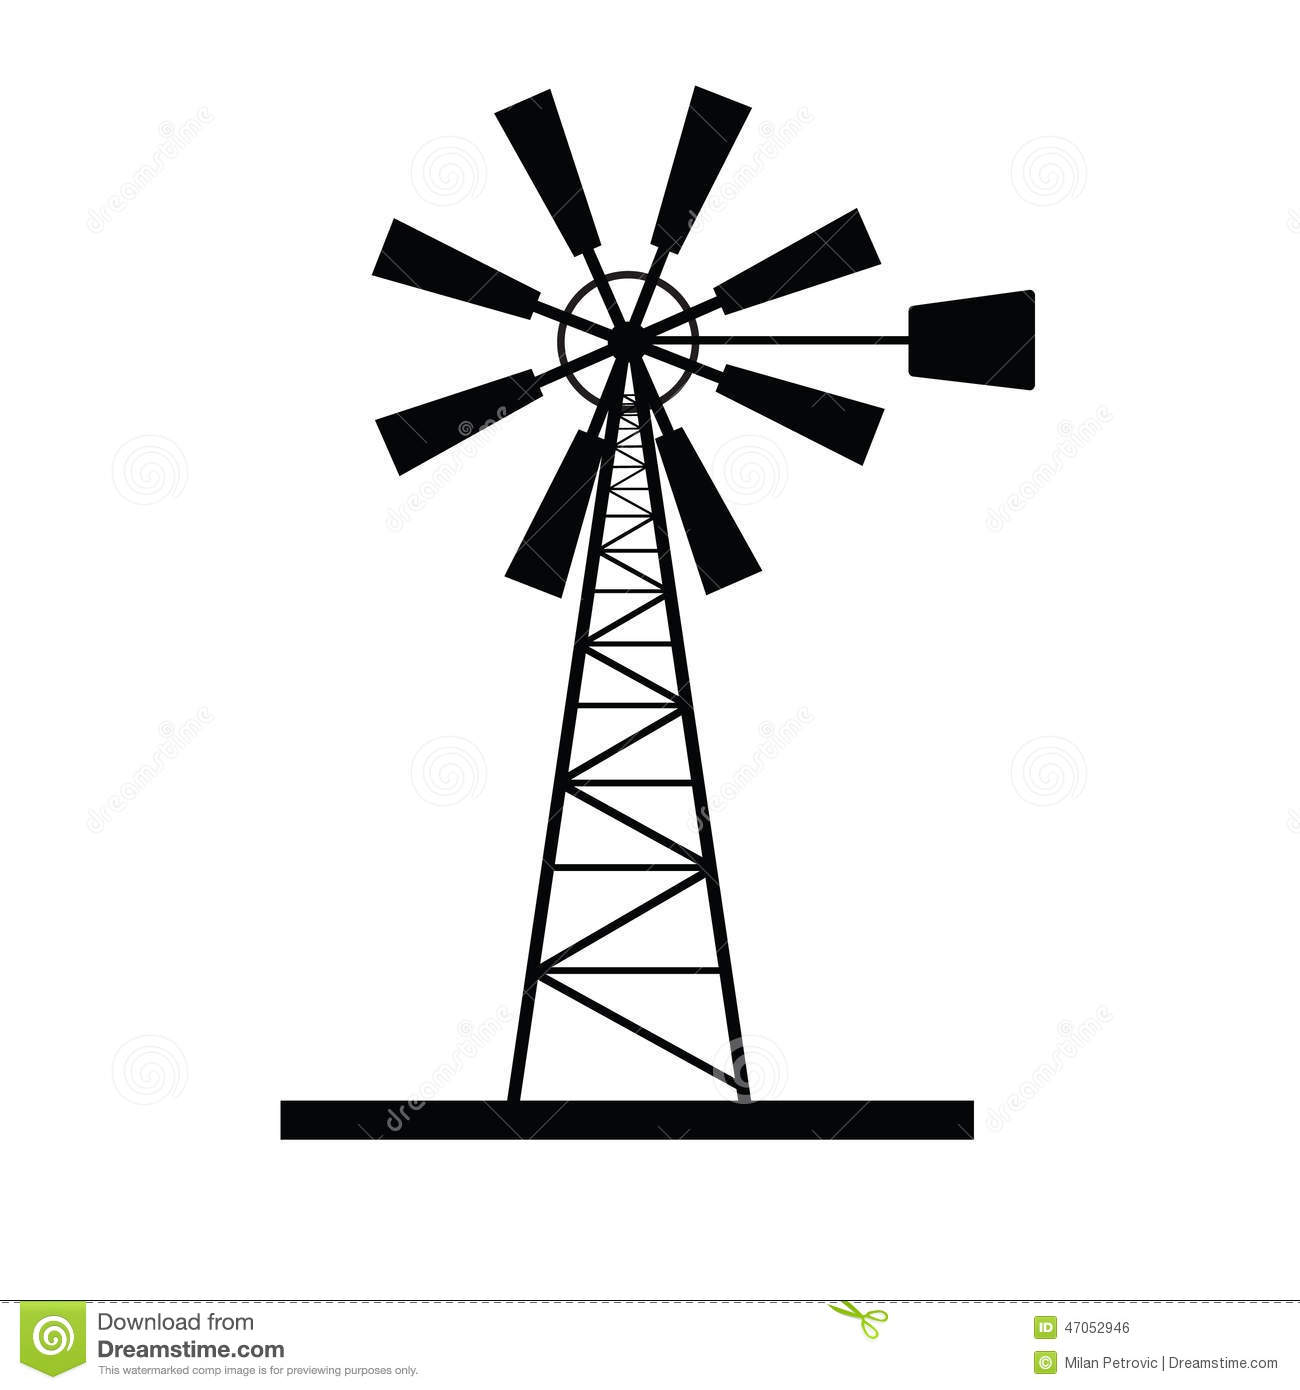 windmill icon or sign isolated on white background mill windmill clipart black and white windmill clipart distressed